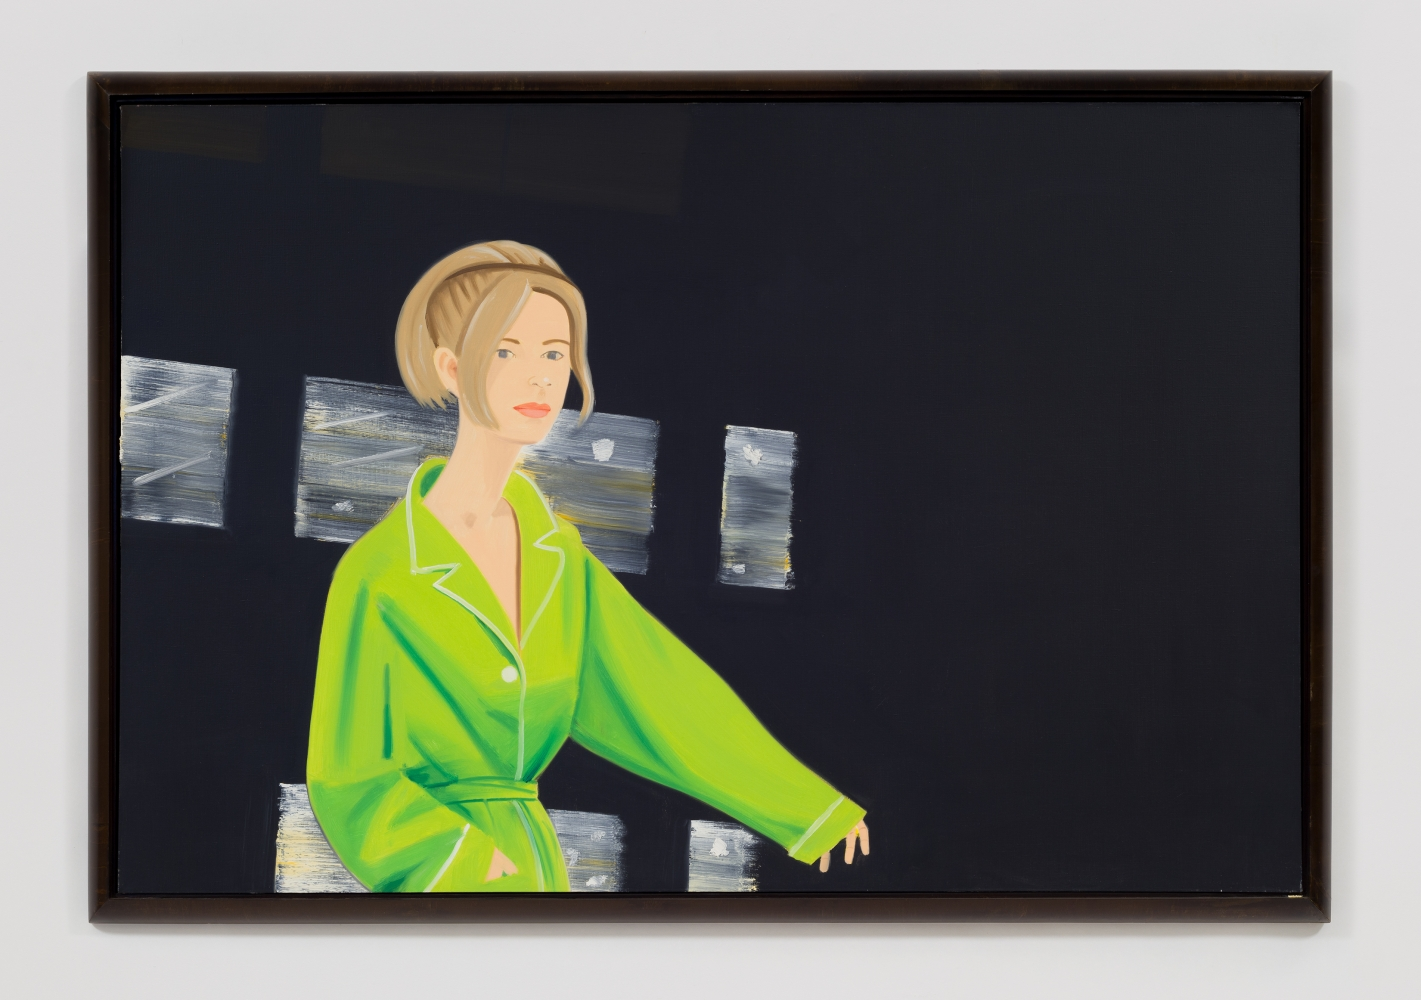 Oil on canvas painting by Alex Katz featuring a woman in a green jacket against a black background